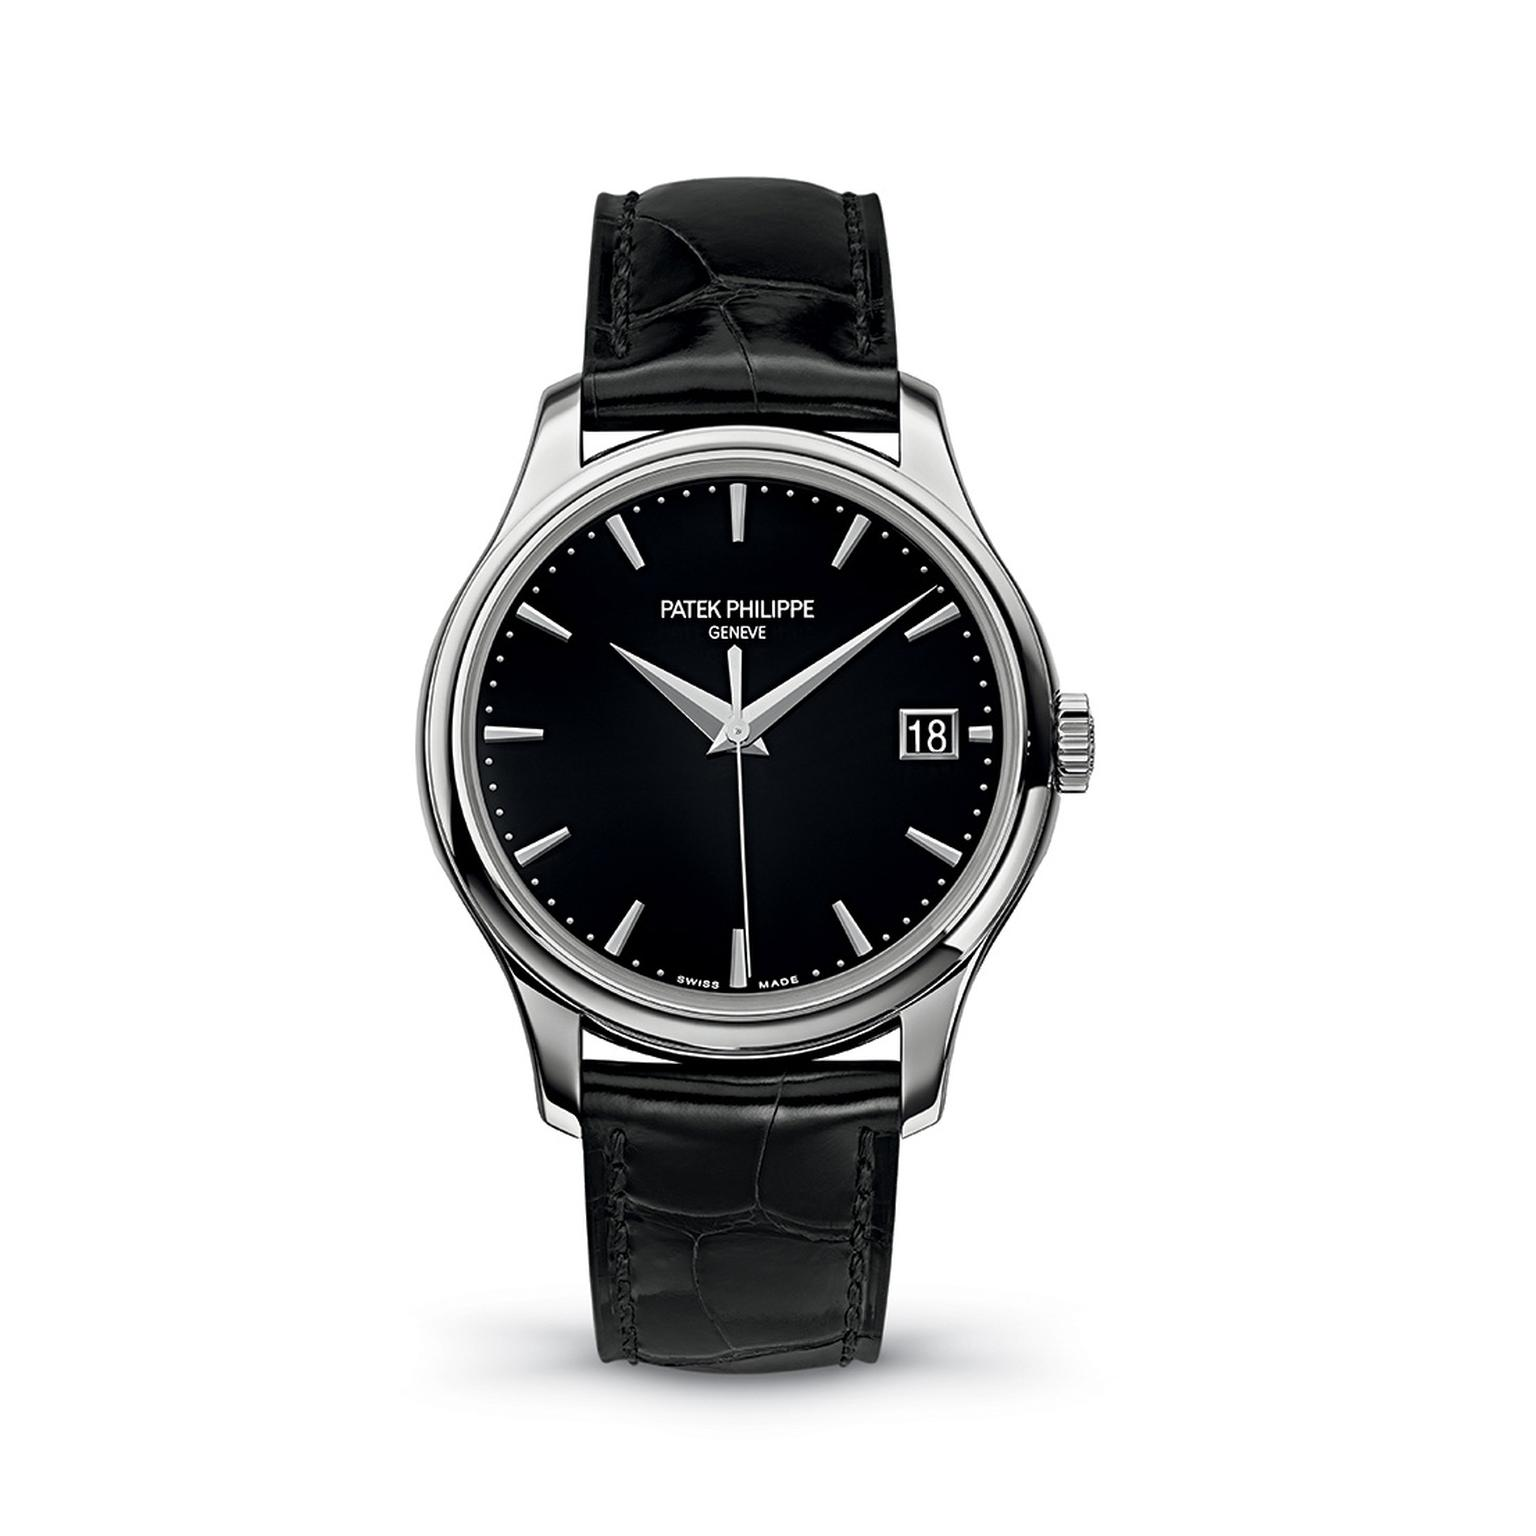 Patek Philippe Calatrava Ref. 5227G watch